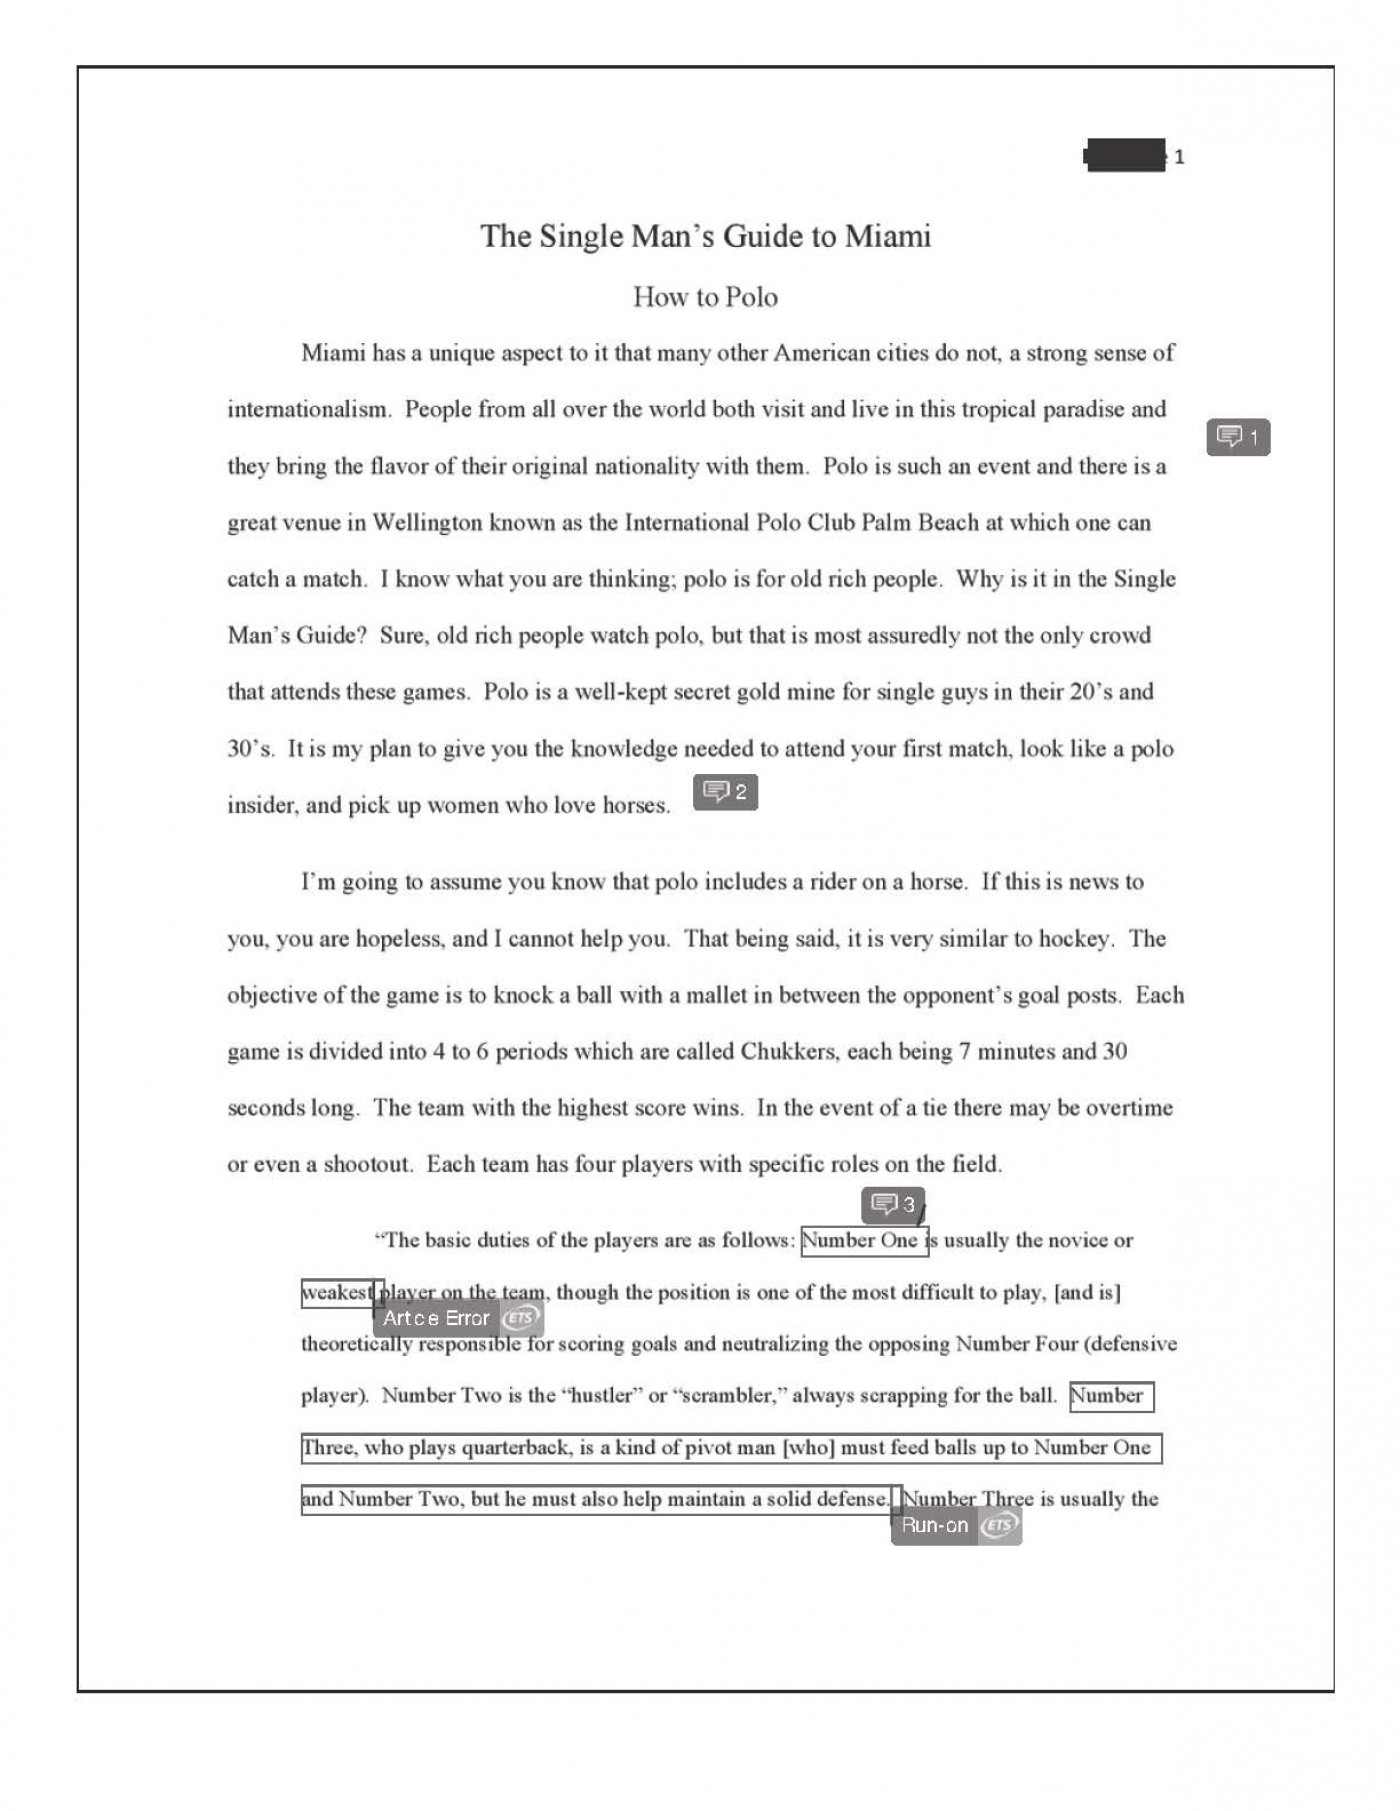 007 Informative Essay Kinds Of Writing Types Essays The Center In Hindi Final How To Polo Redacted P Pdf Task Slideshare Ppt Withs Wikipedia Dreaded Graphic Organizer Middle School Rubric 6th Grade Topics 1400